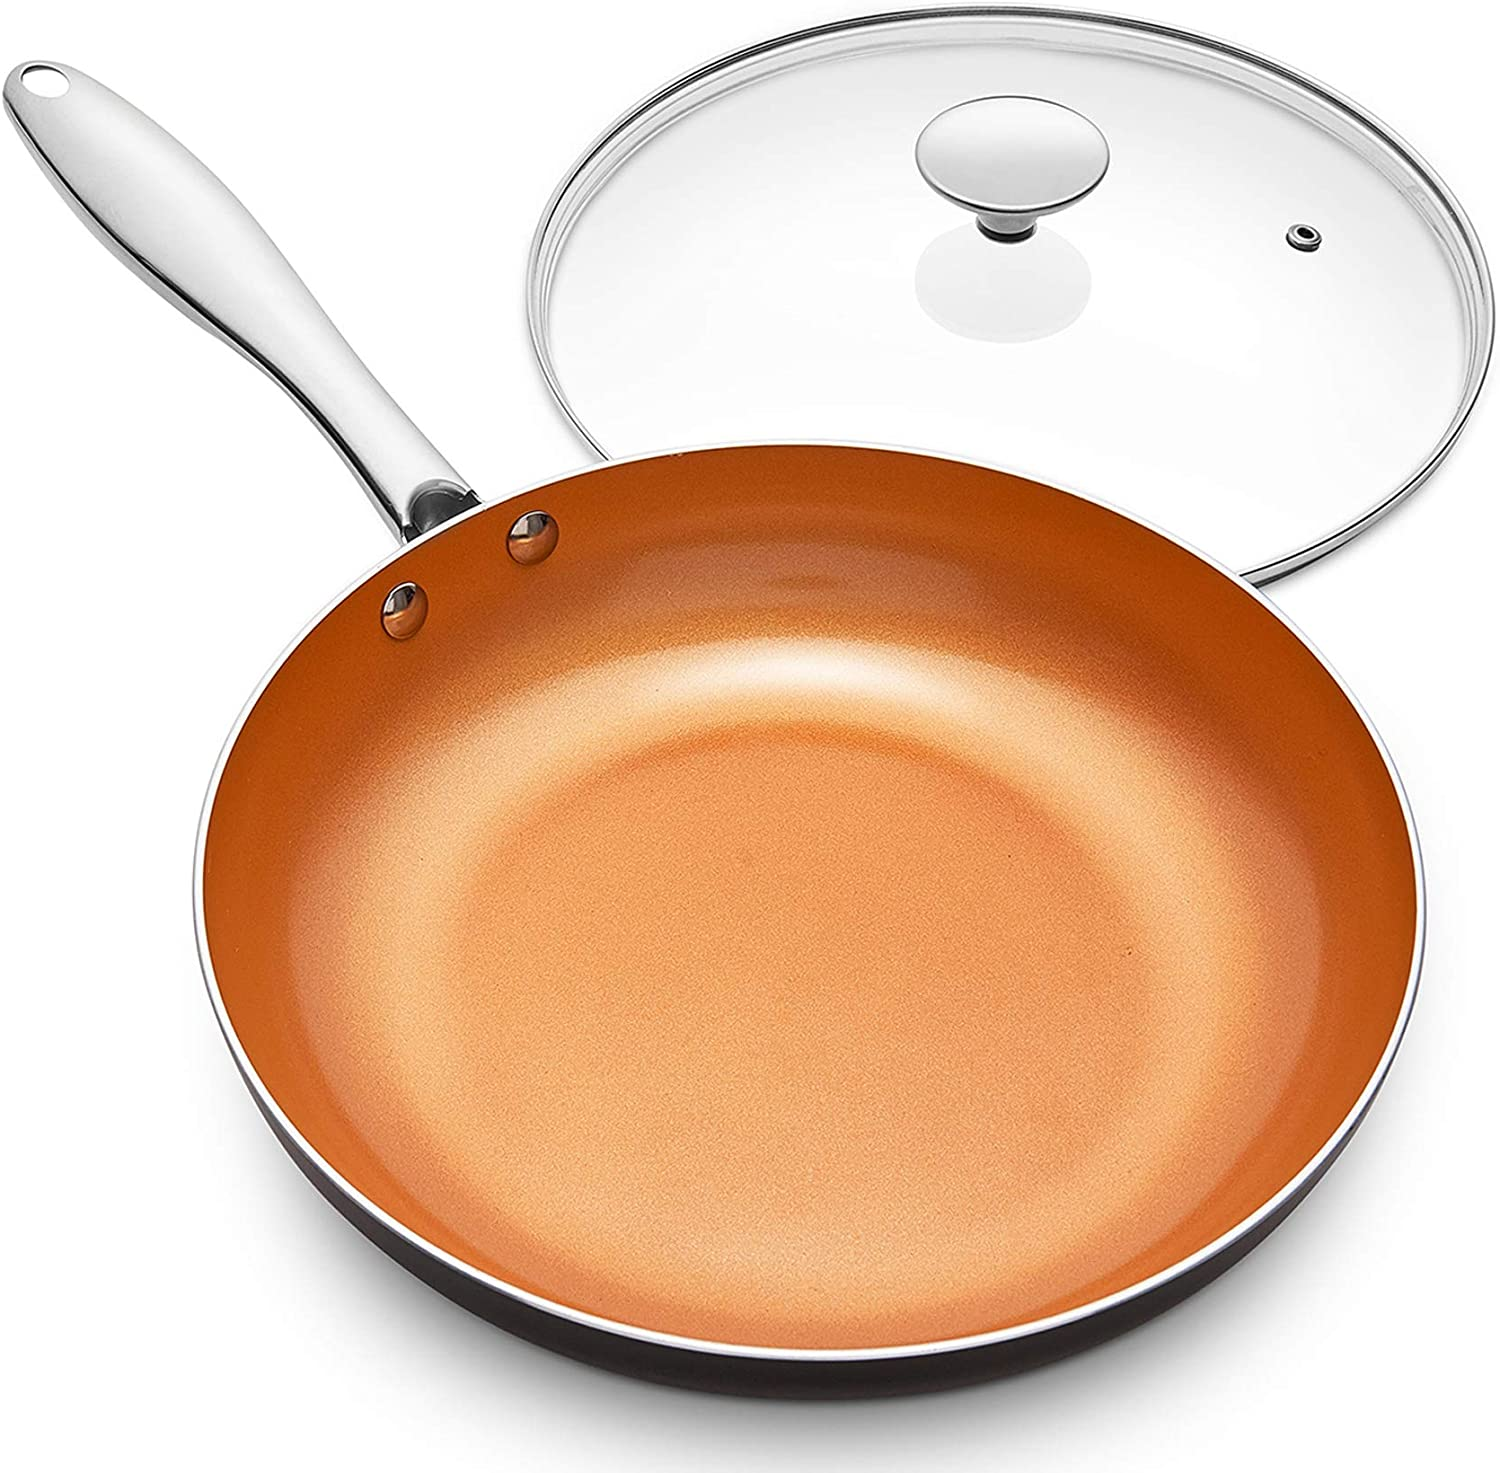 Best Non-Stick Pans For Gas Stoves